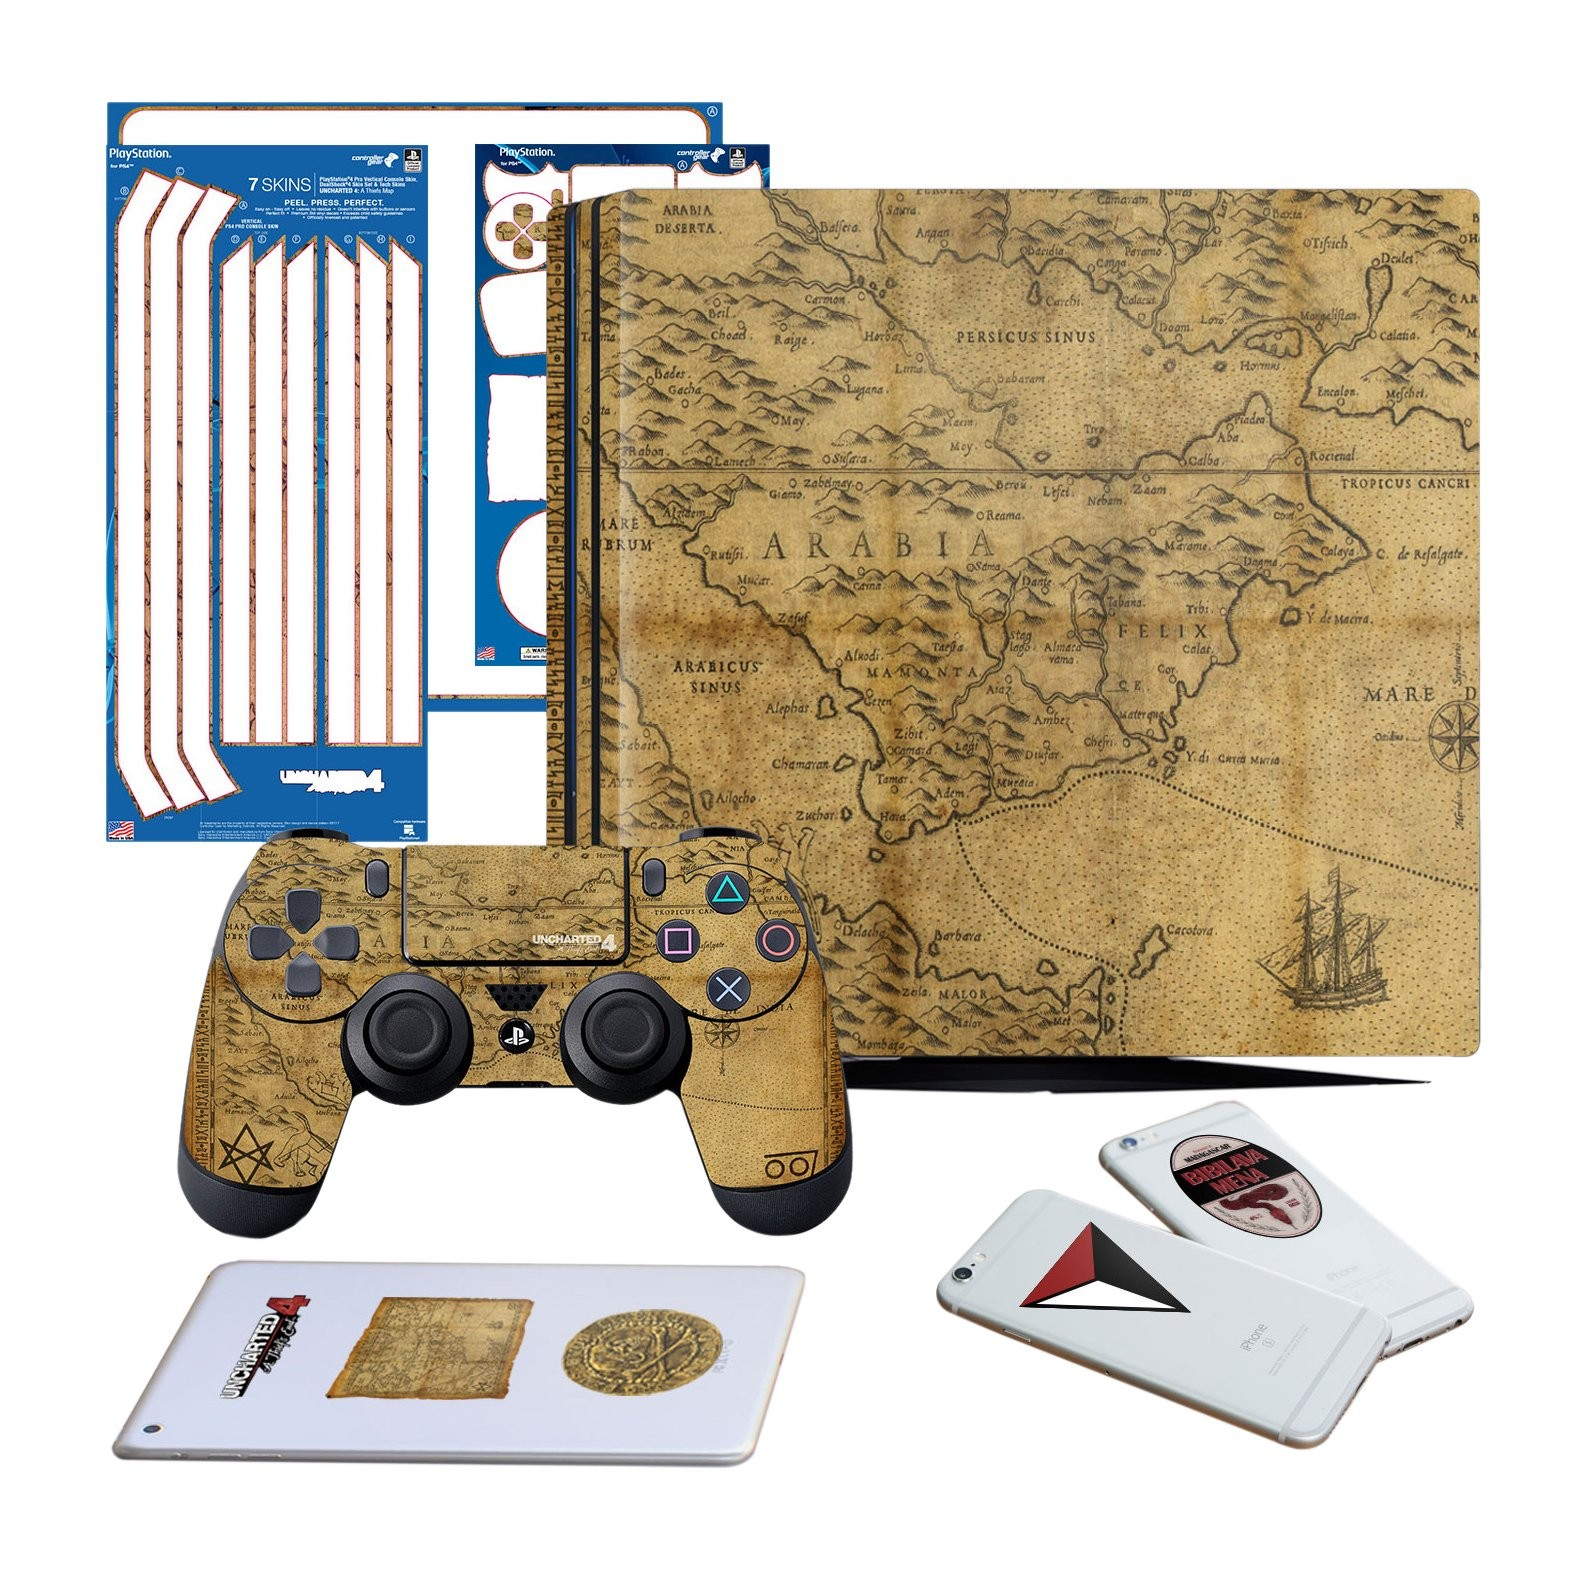 Uncharted 4 Map - PS4 PRO Vertical Console and Controller Gaming Skin Pack - Officially Licensed by PlayStation - Controller Gear